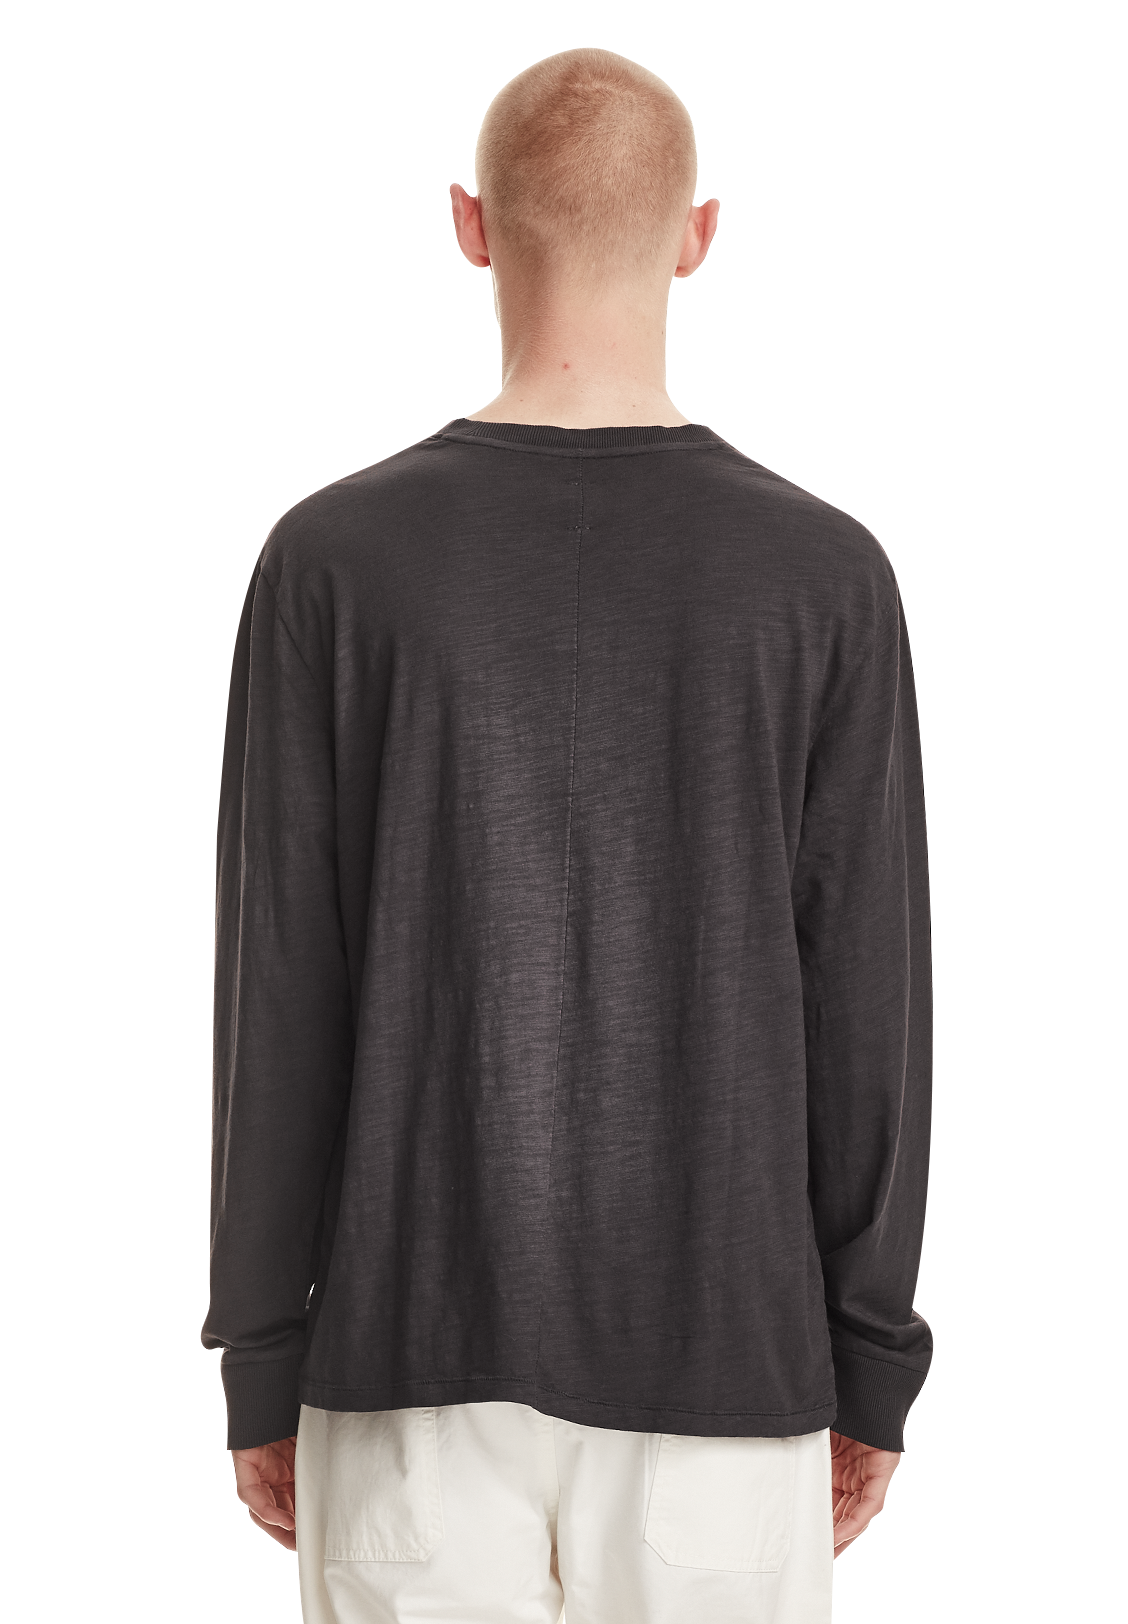 RELAXED LS TEE, VINTAGE GREY